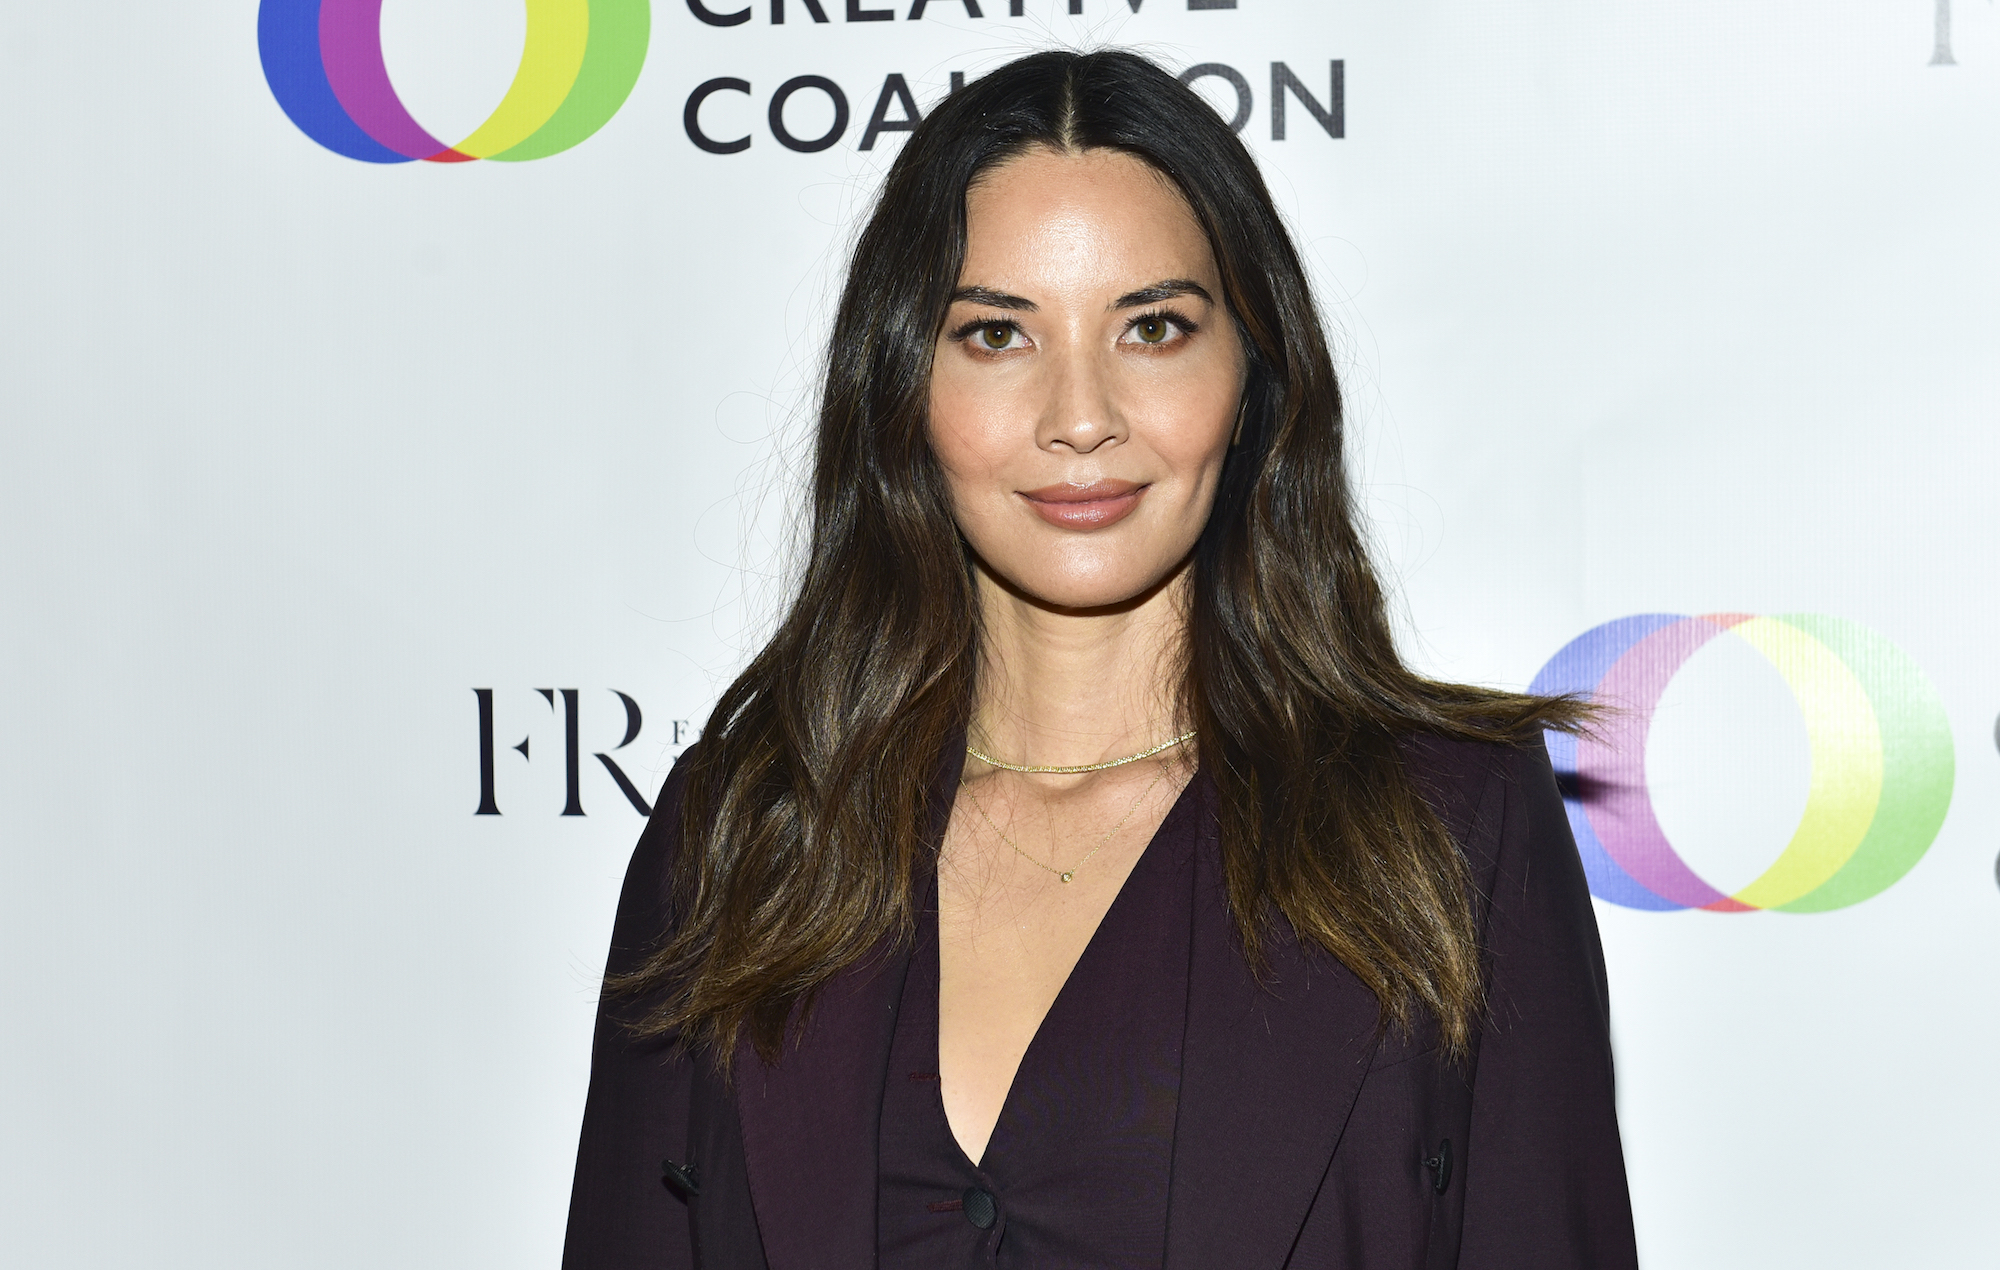 NME Festival blog: Olivia Munn says 'Predator' director Shane Black hasn't spoken to her since she got a scene featuring a registered sex offender cut from film